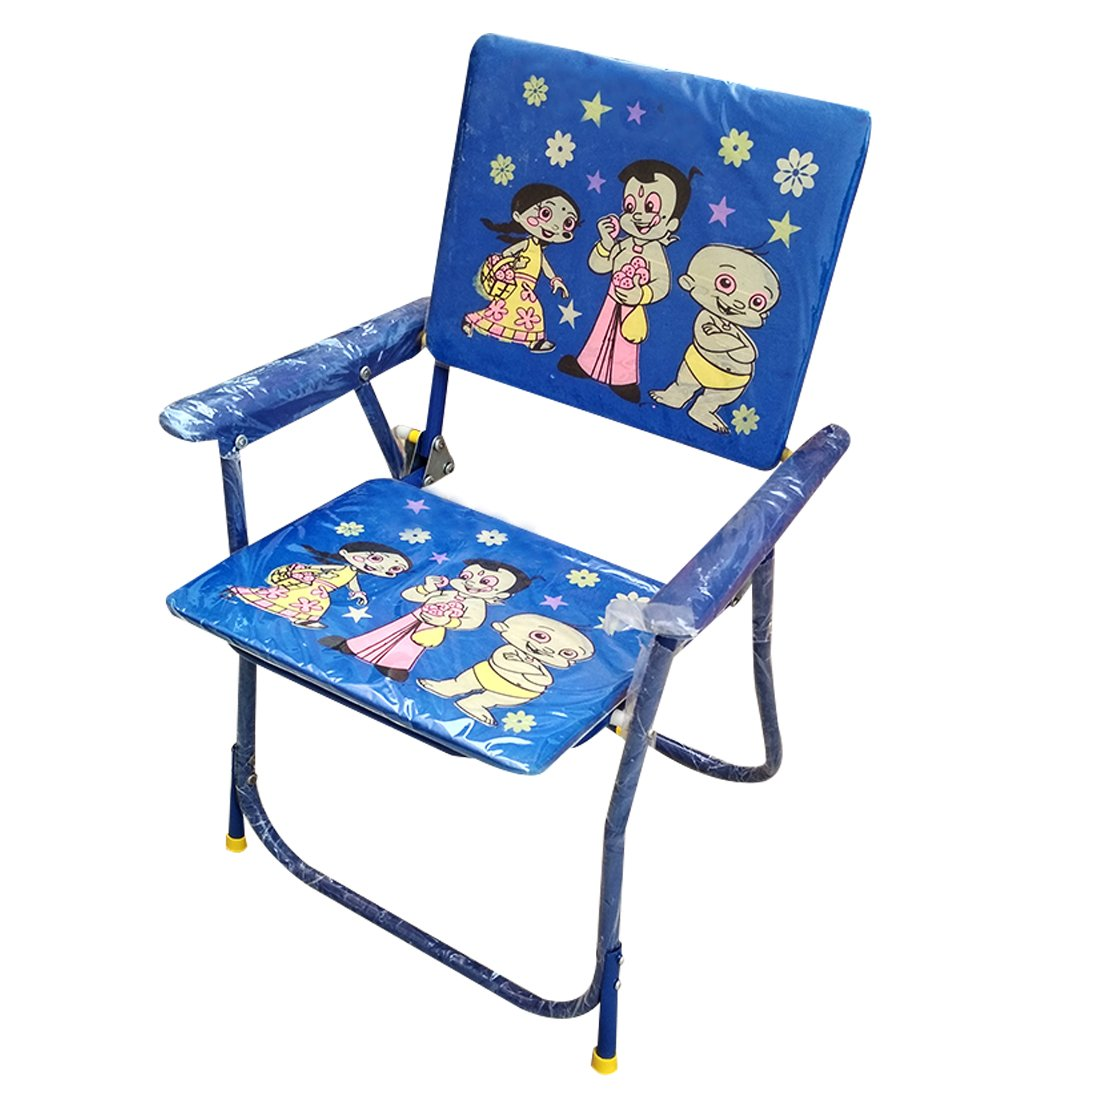 Astonishing Buy Confiado Kids Table Chair Set Online At Low Prices In Andrewgaddart Wooden Chair Designs For Living Room Andrewgaddartcom